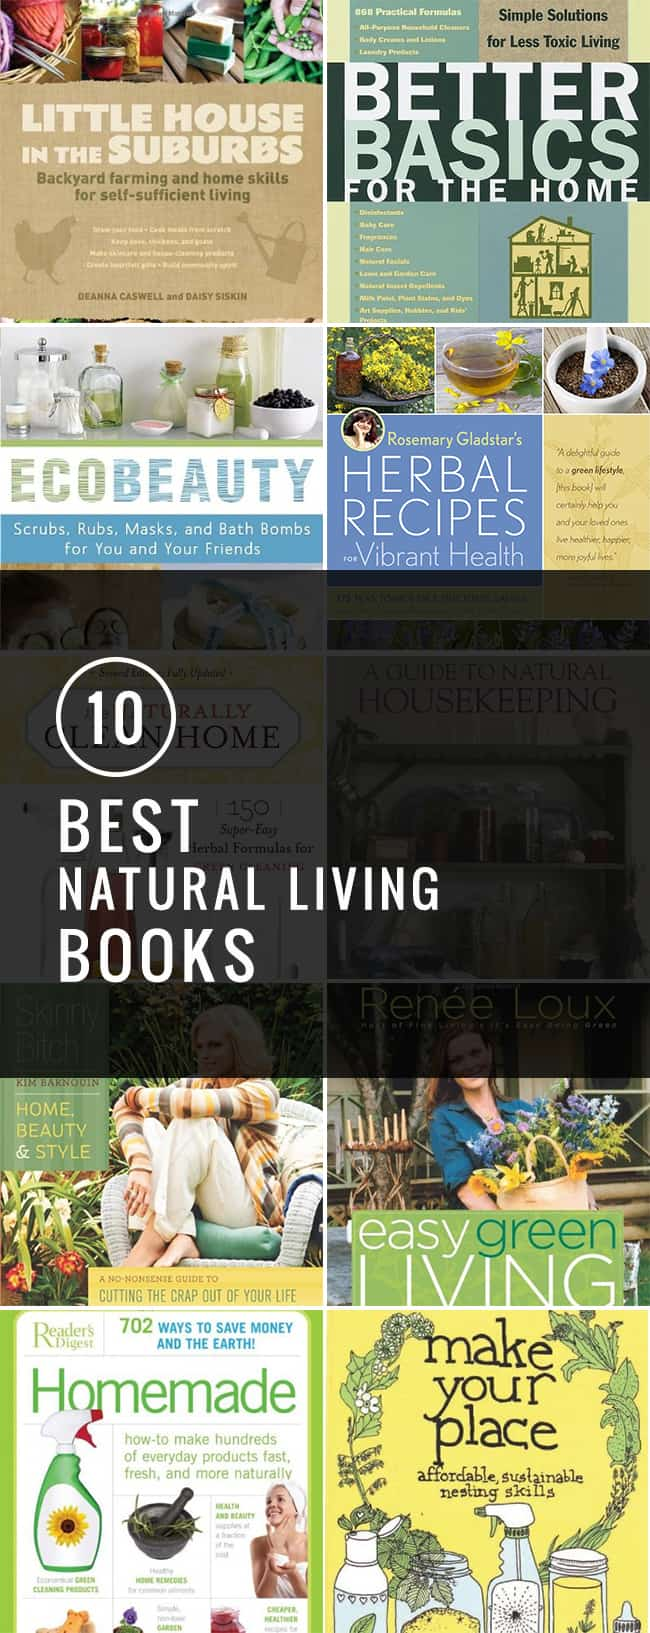 10 Favorite Natural Living Books | Hello Glow